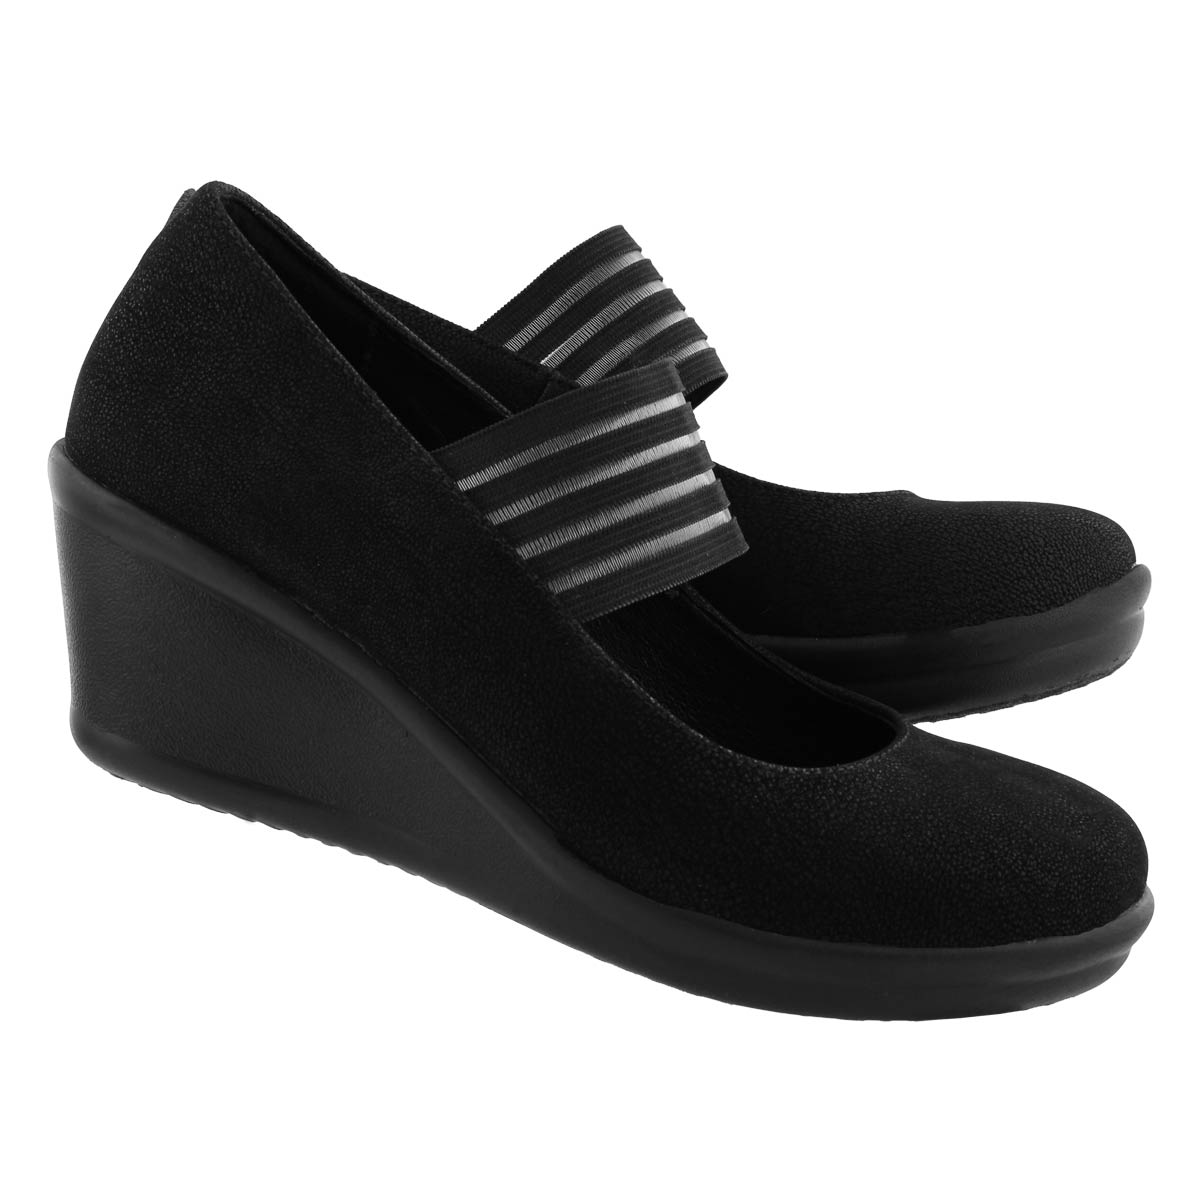 Lds Rumblers Space Odyssey blk wedges